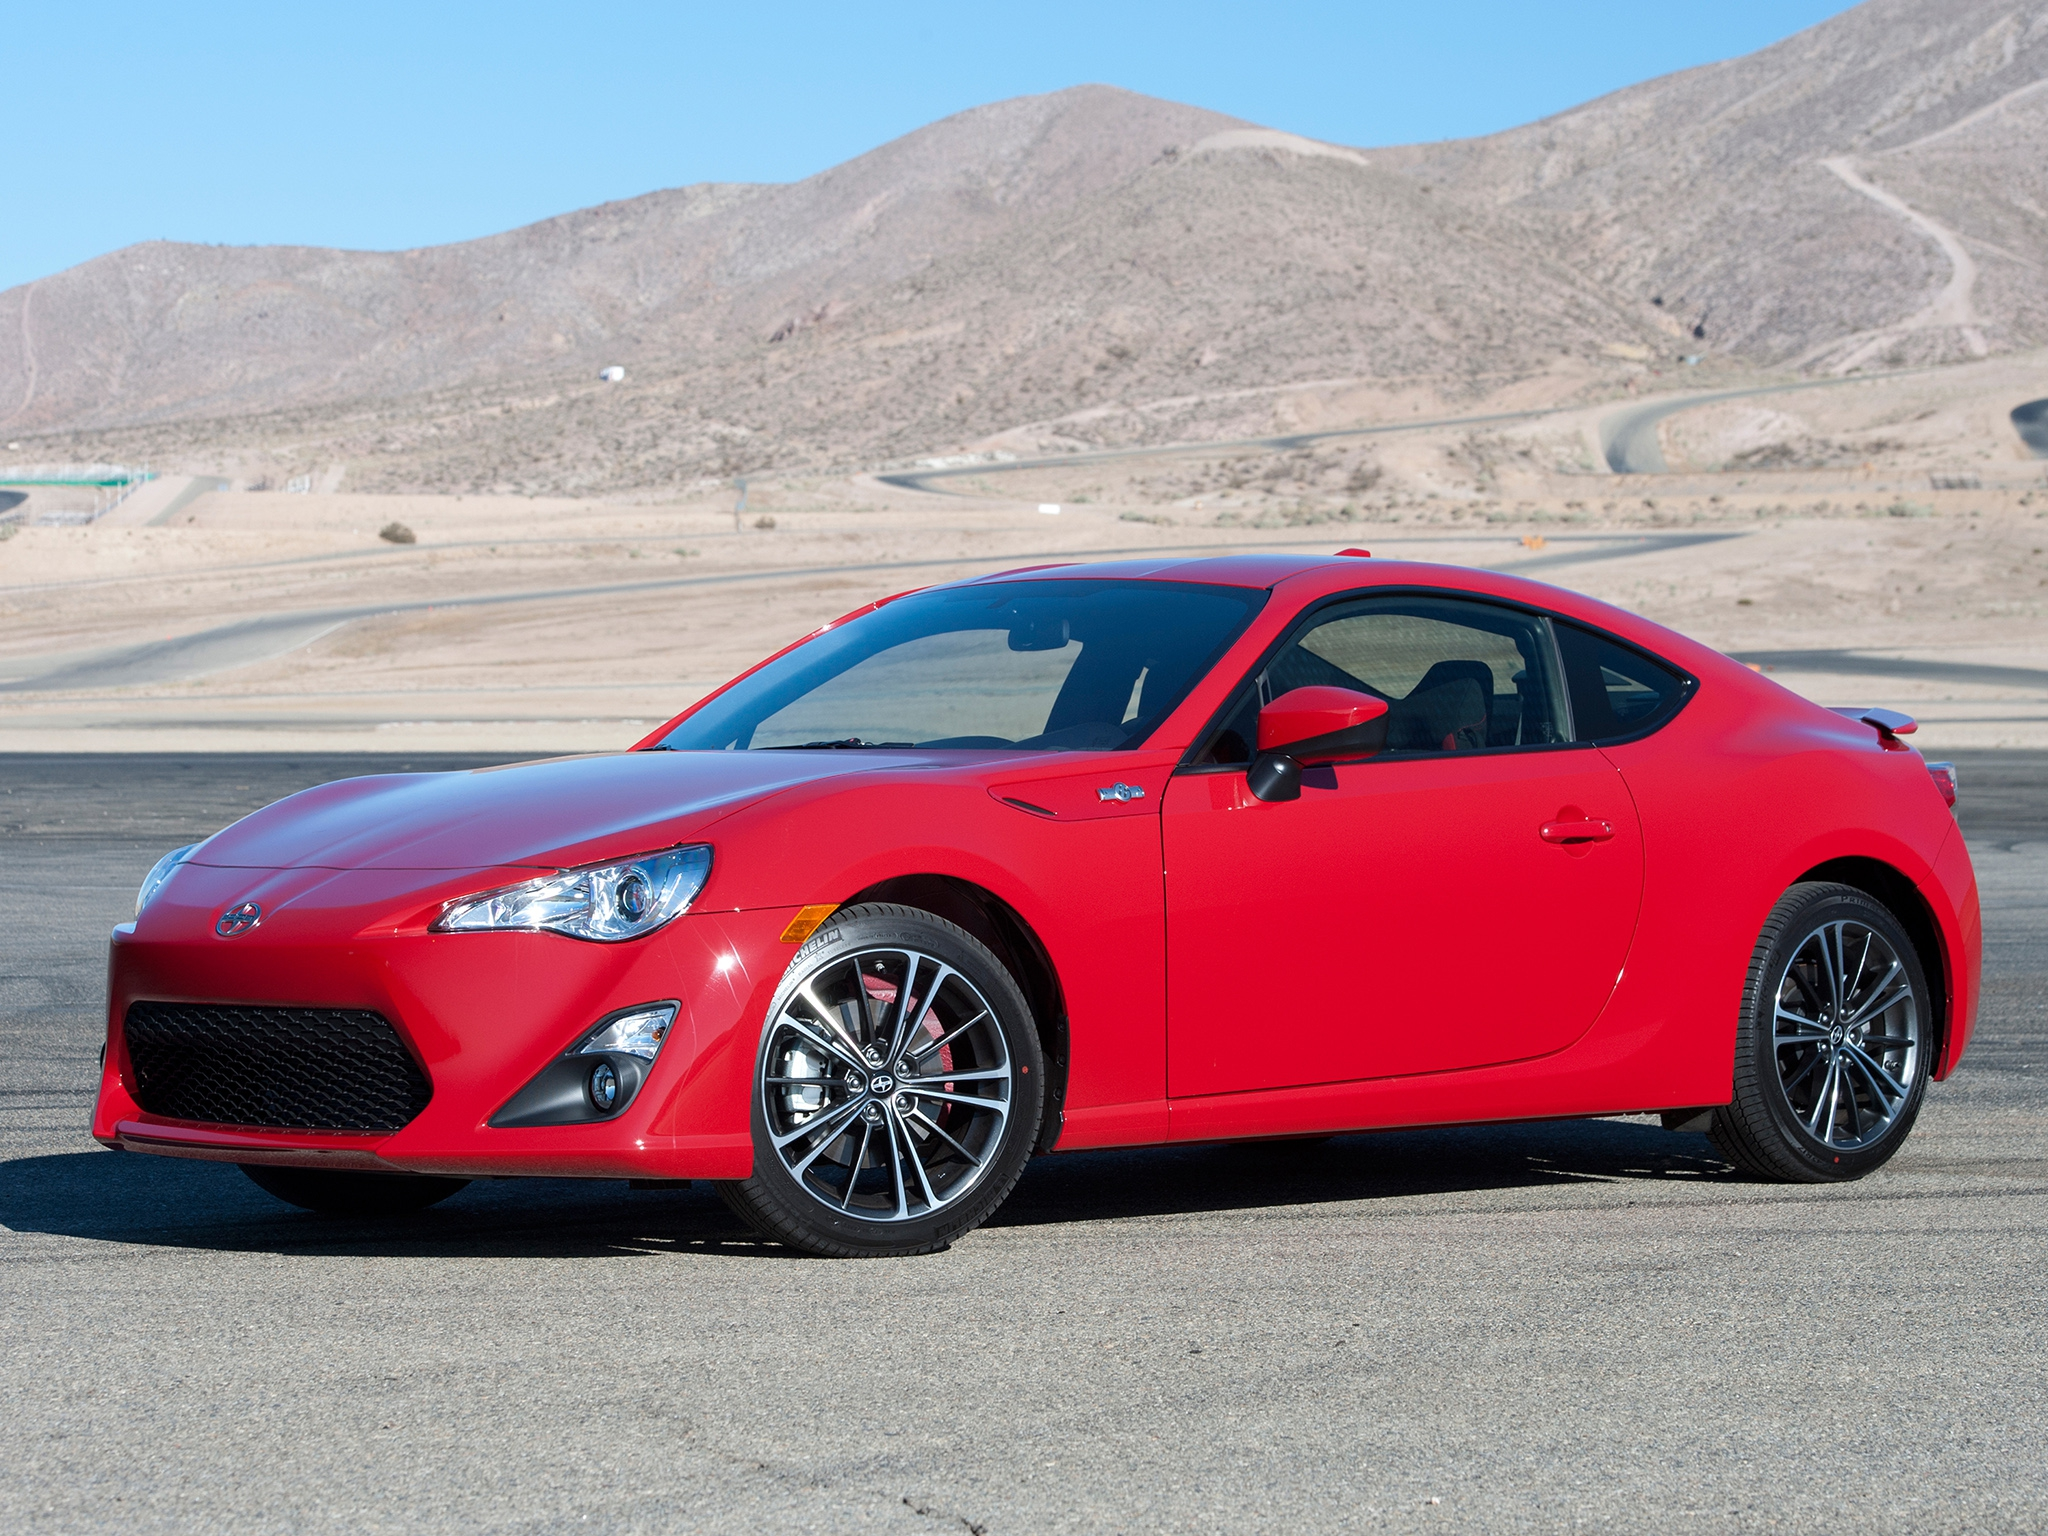 scion_fr-s_11.jpeg